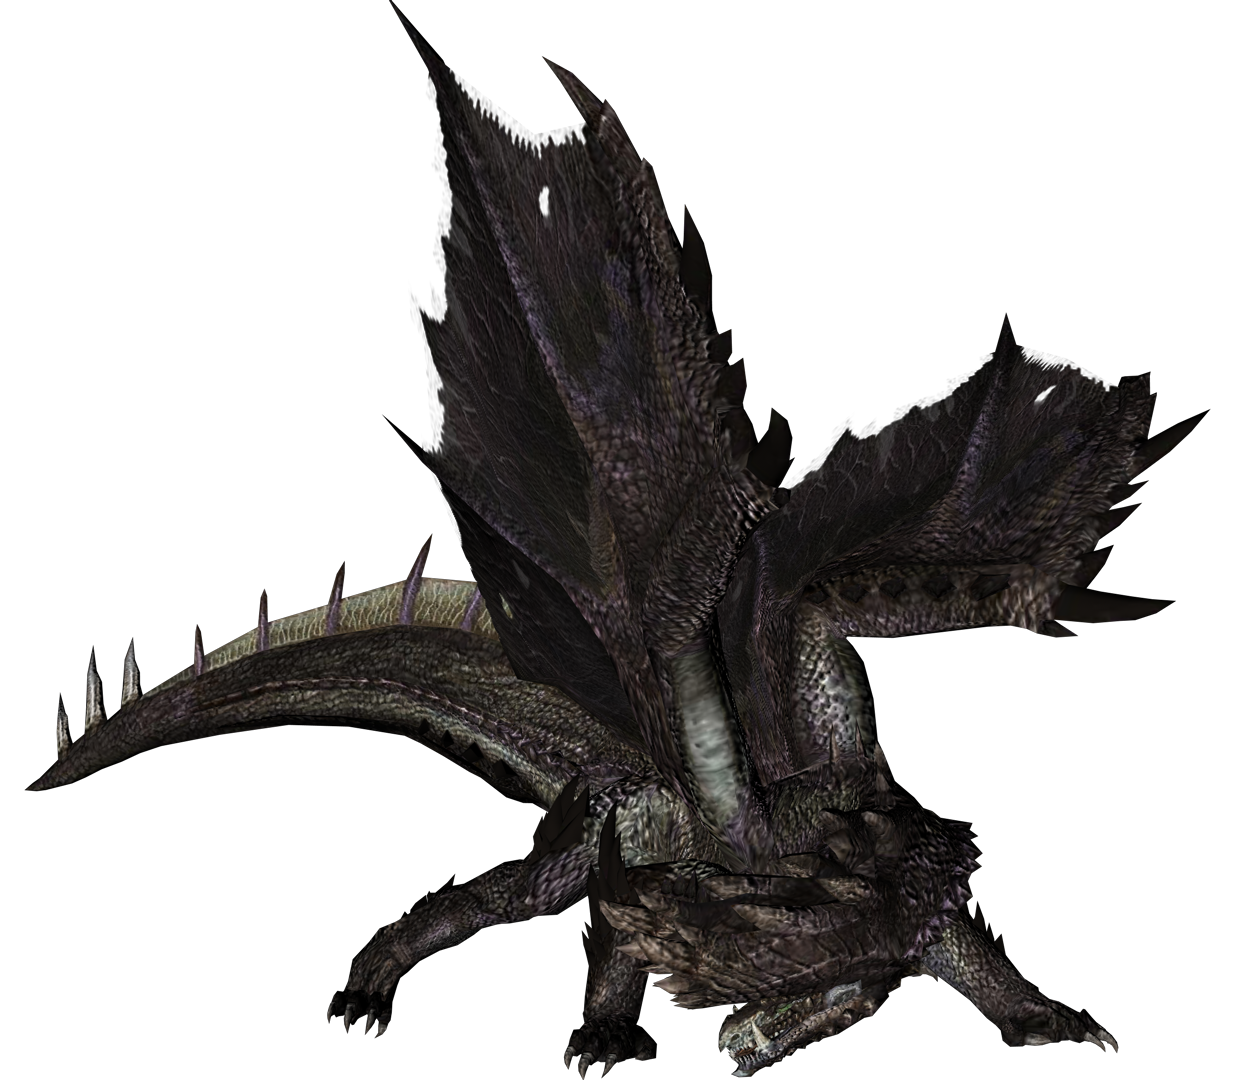 Guild Knight S Monster Hunter Place My Top Ten Favorite Monsters